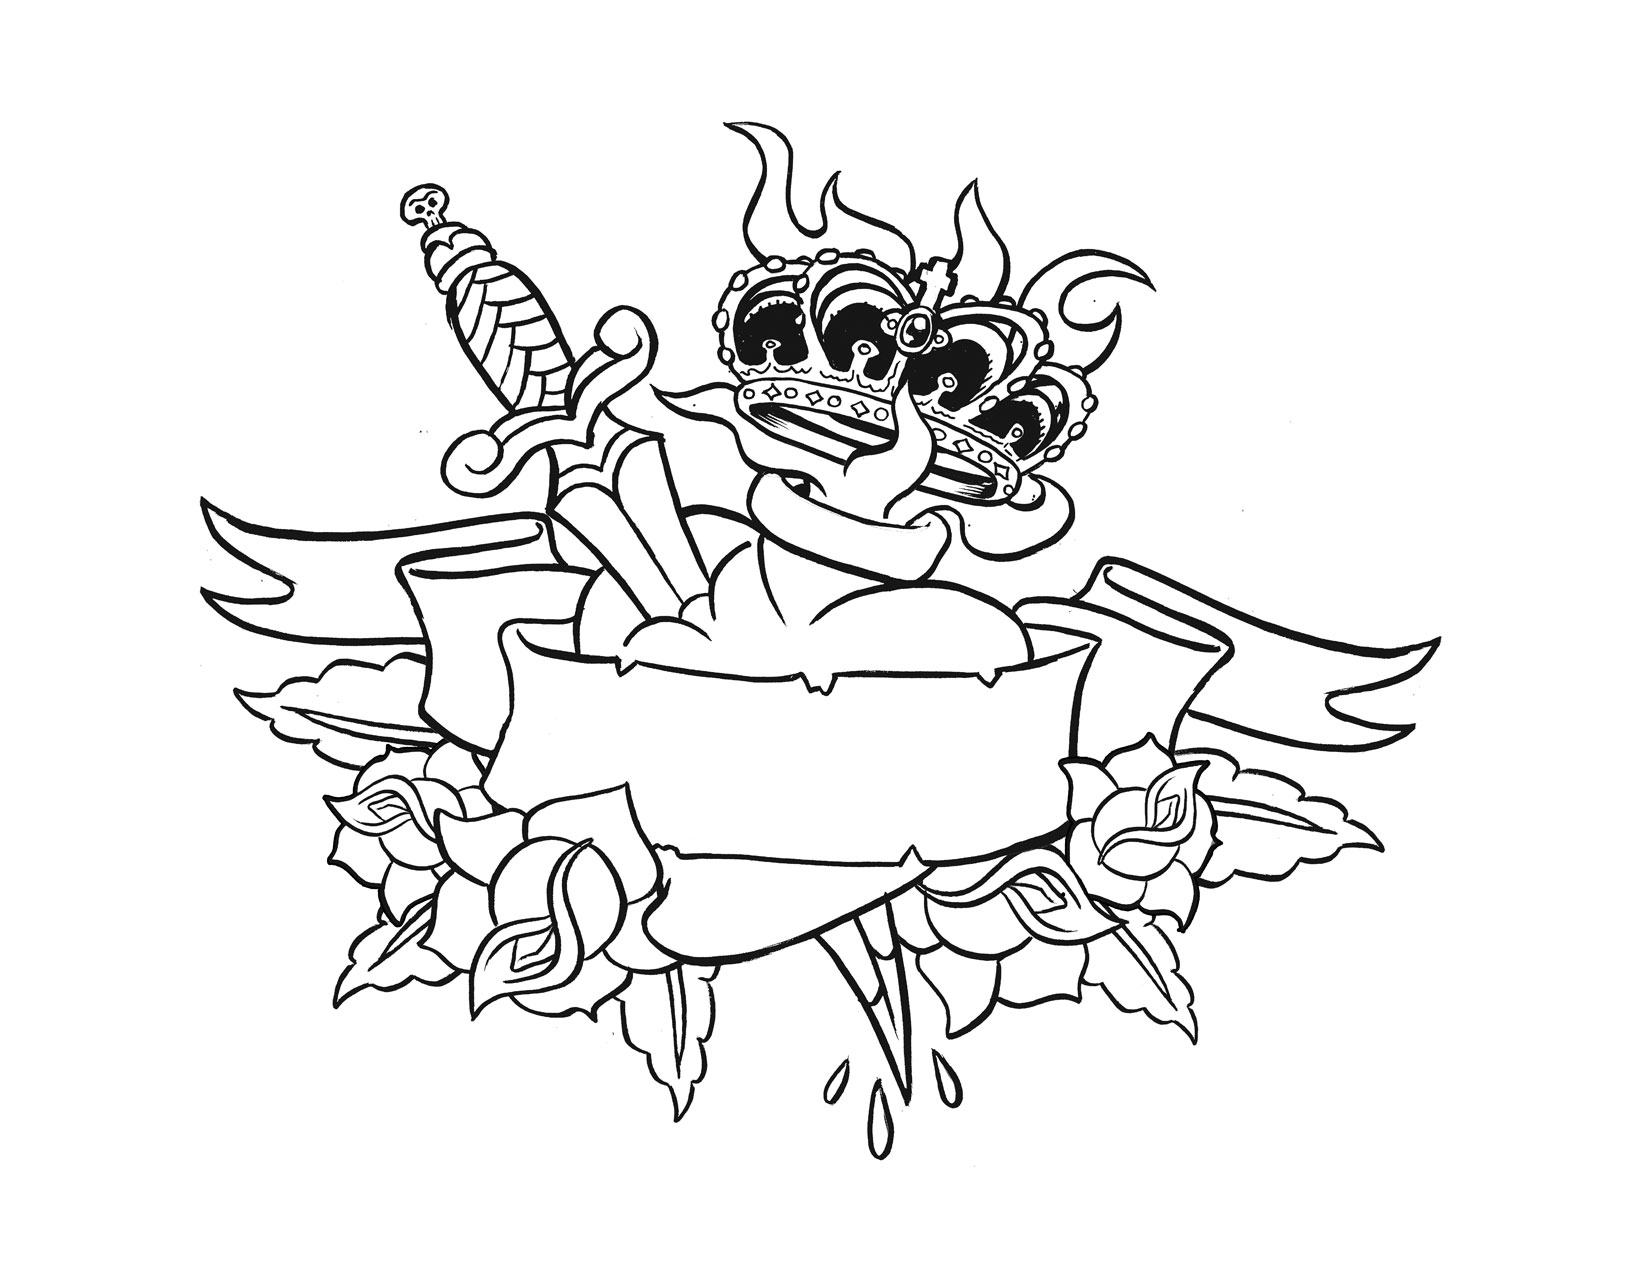 tattoo coloring pages printable tattoo coloring pages coloring pages to download and print printable coloring tattoo pages